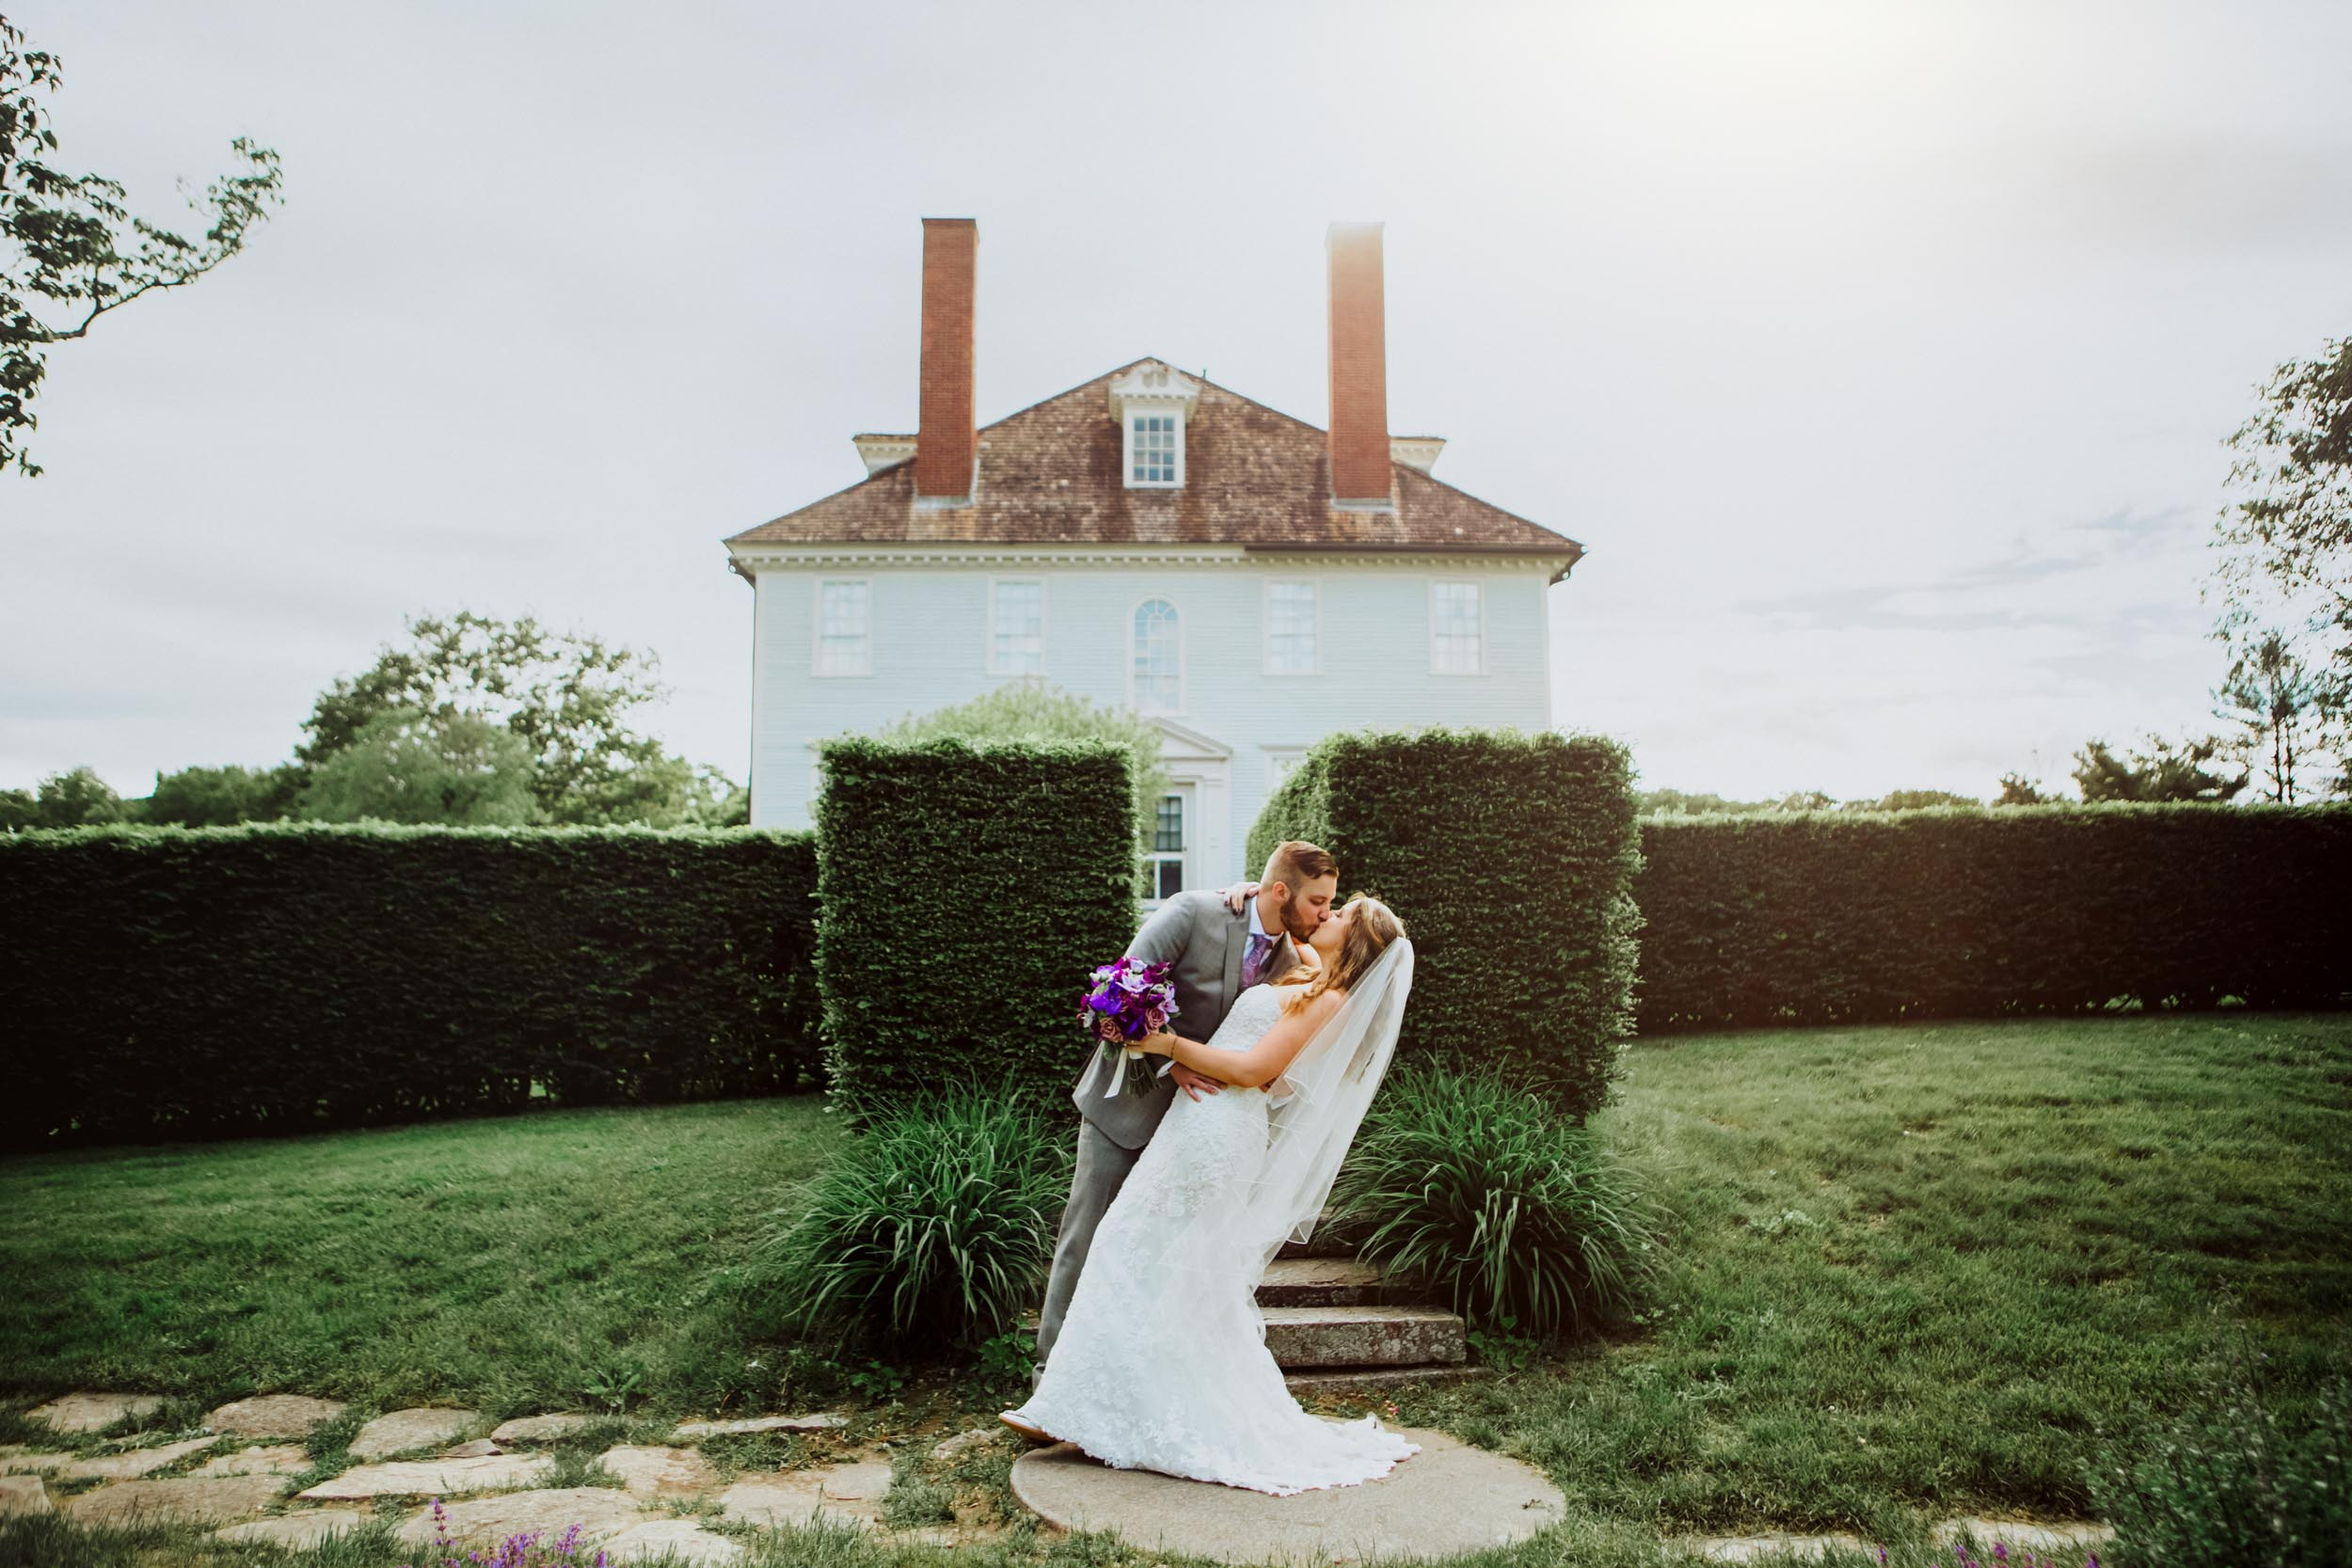 Wedding photography - Romantic and timeless wedding photography. Documenting real moments throughout New England.